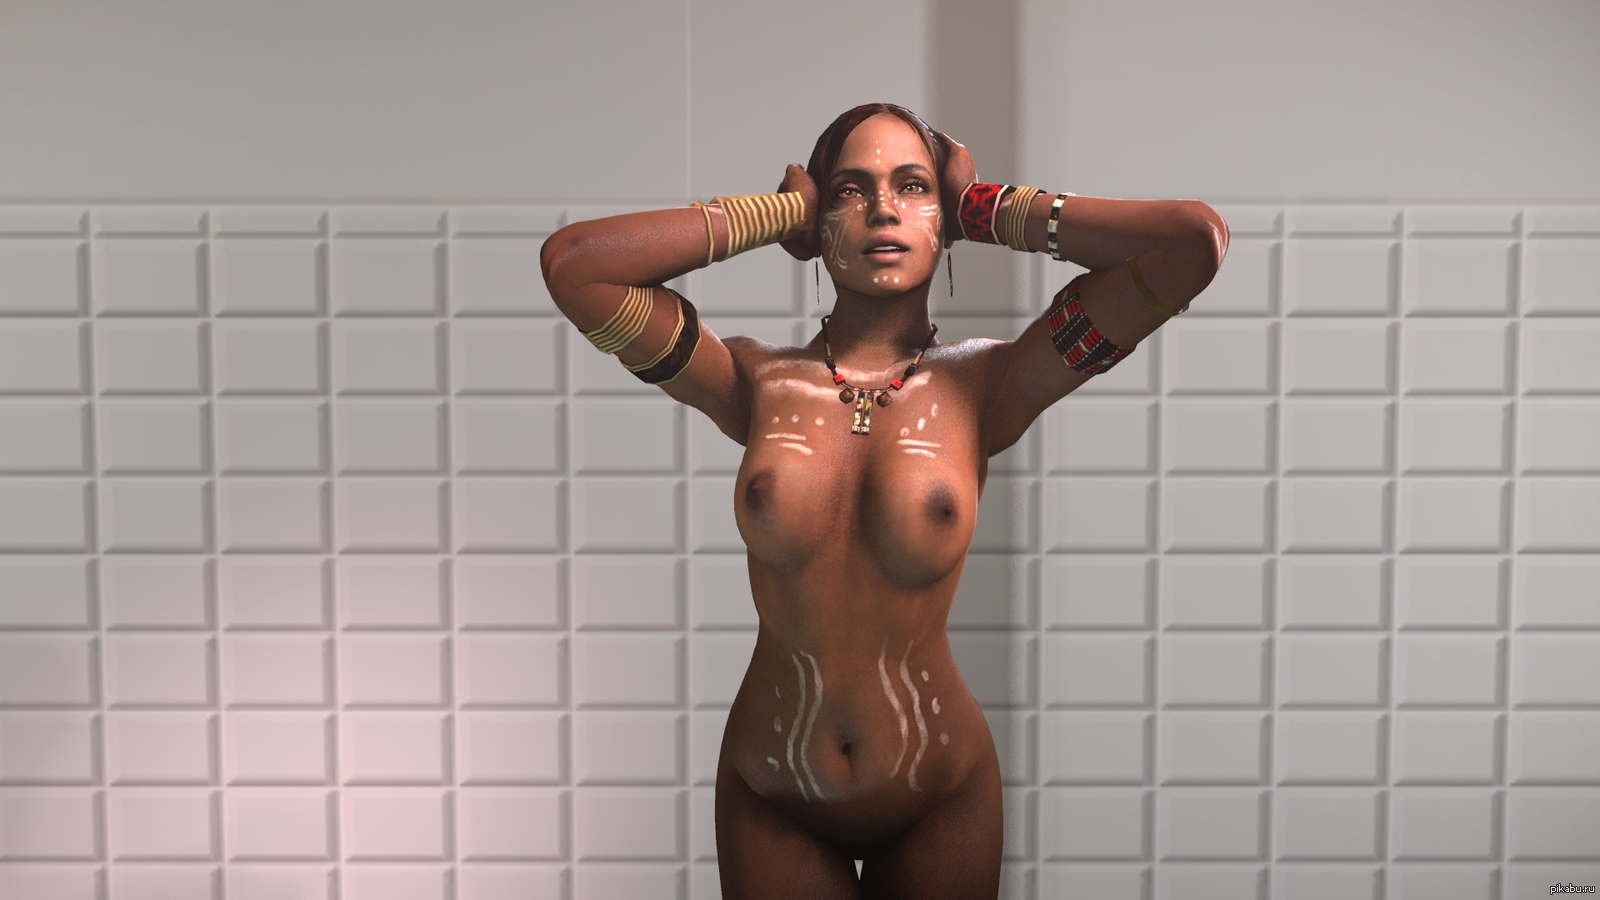 Sheva alomar fucking exposed photos